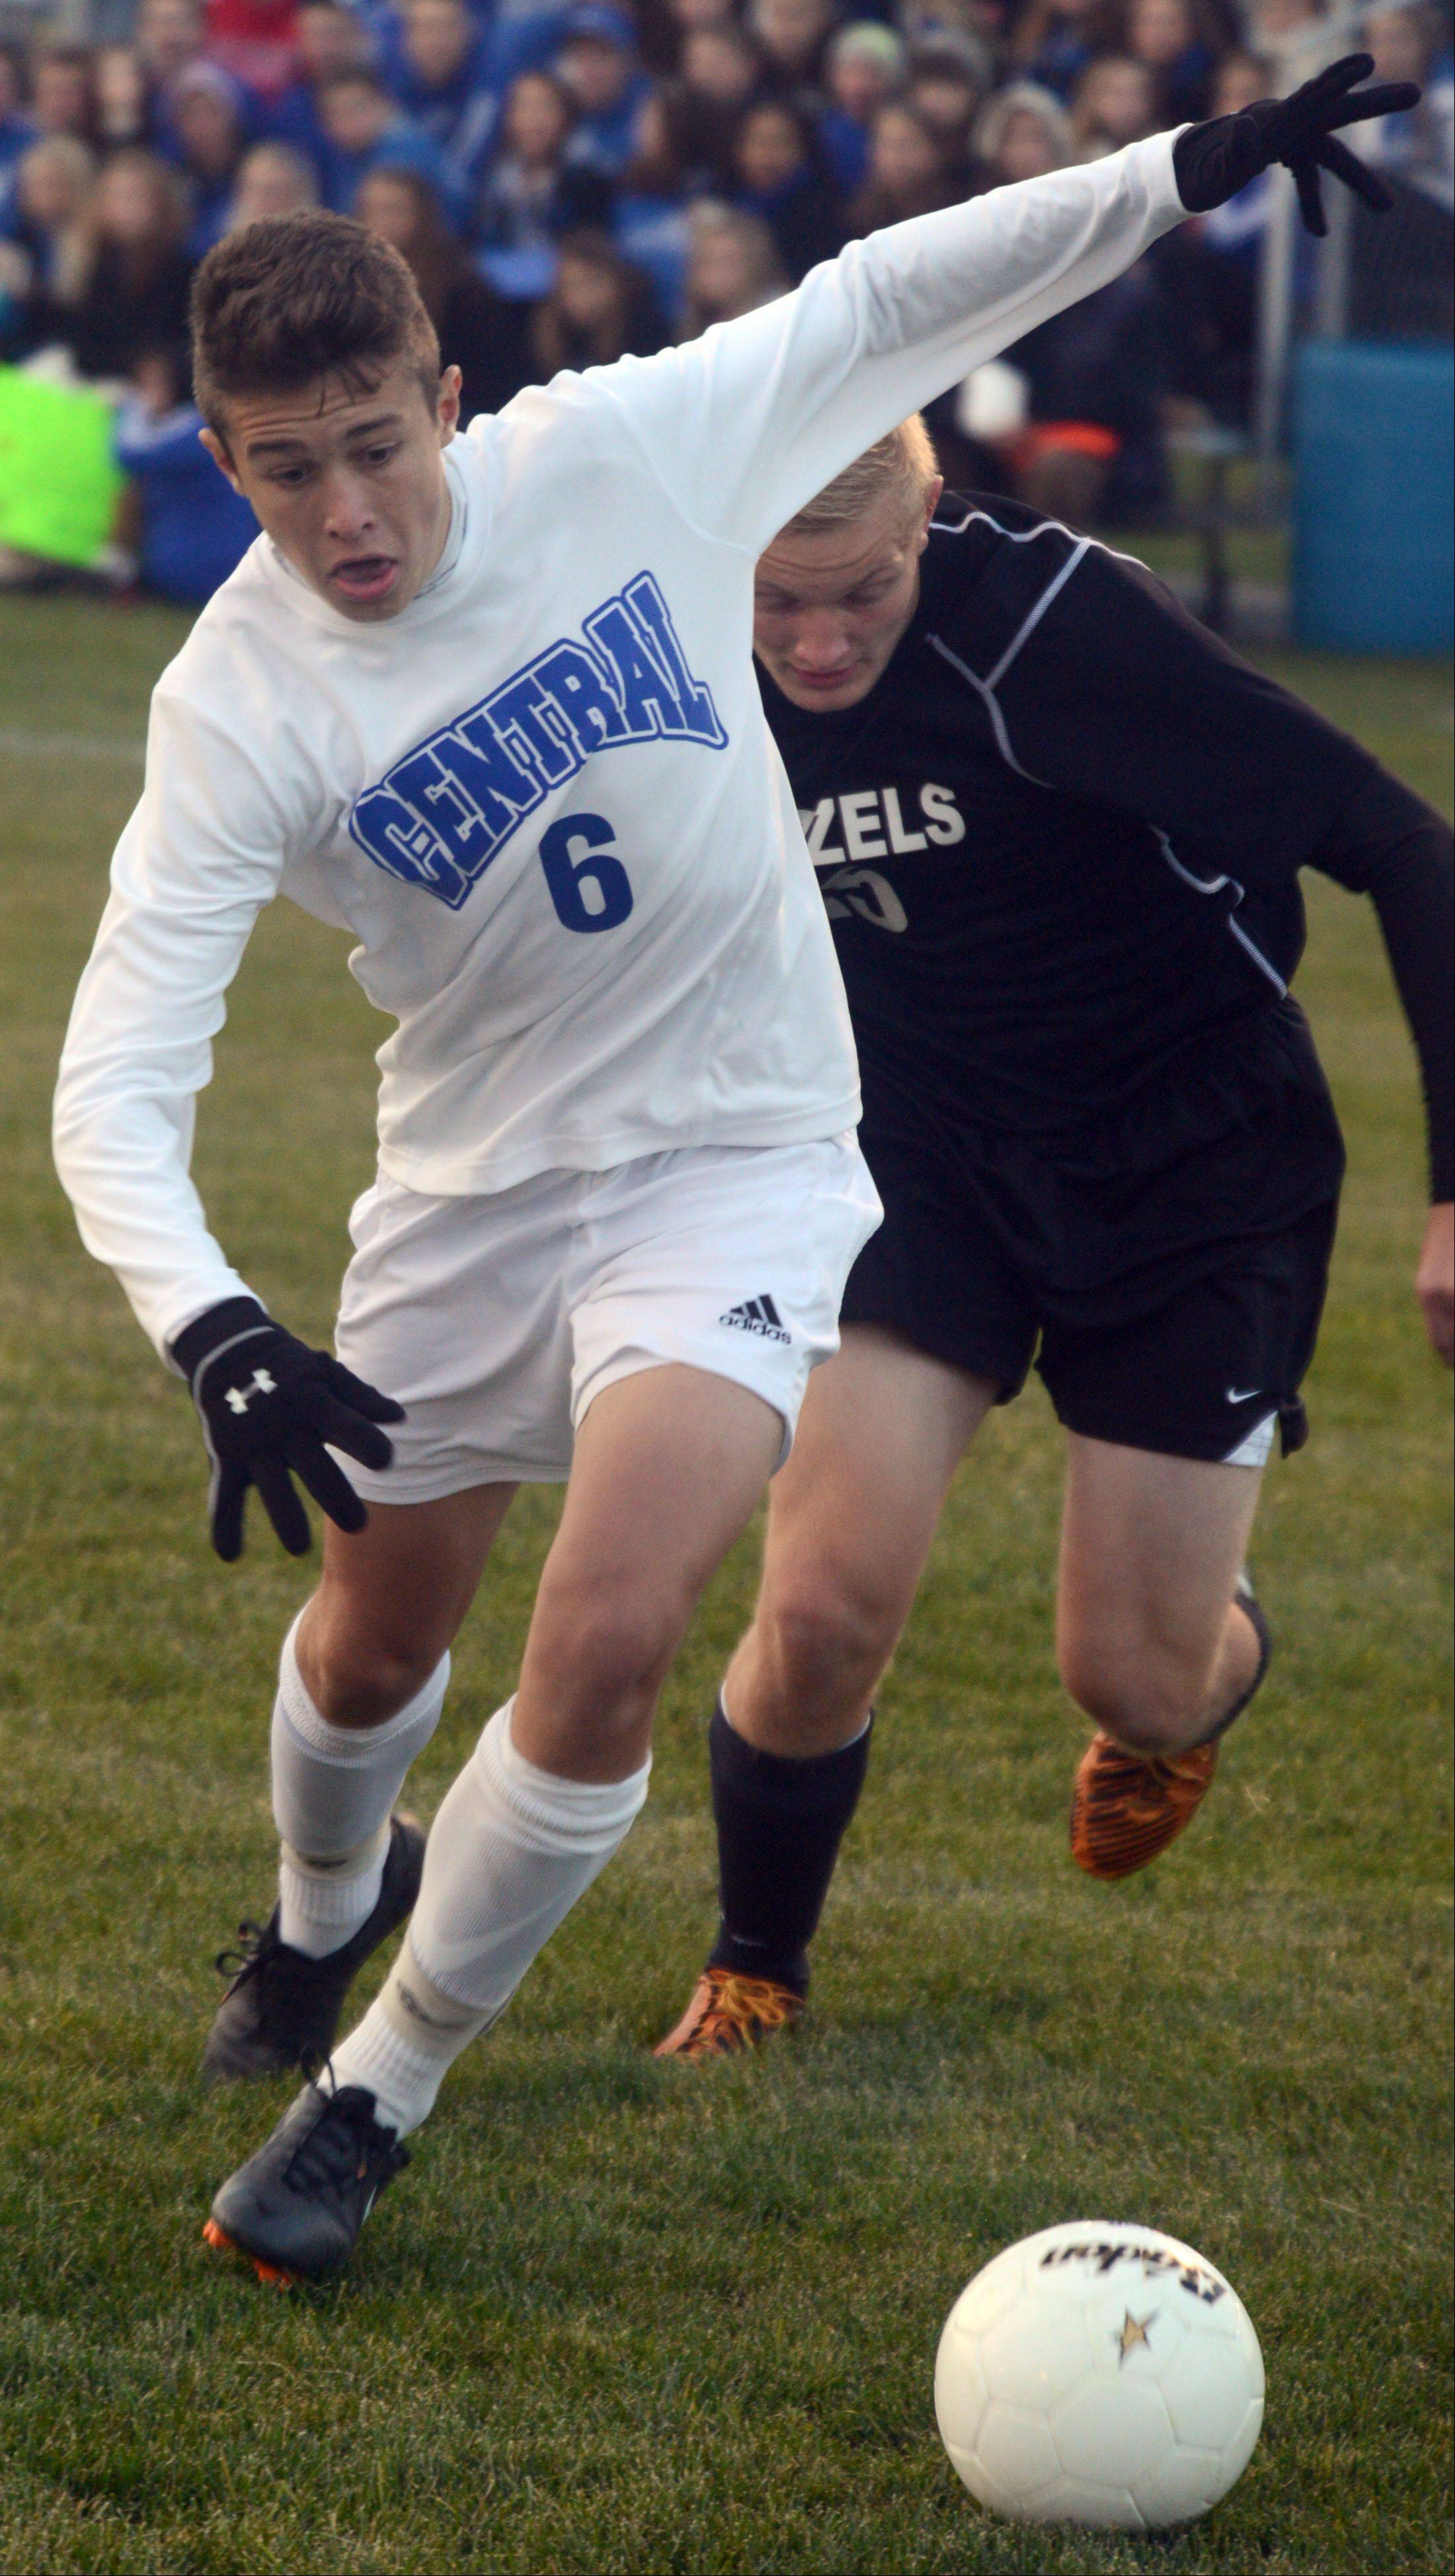 Burlington Central's Nate McMahon, left, races Freeport's Andrew Woods to the ball during a soccer sectional semifinal game at Burlington on Tuesday night.